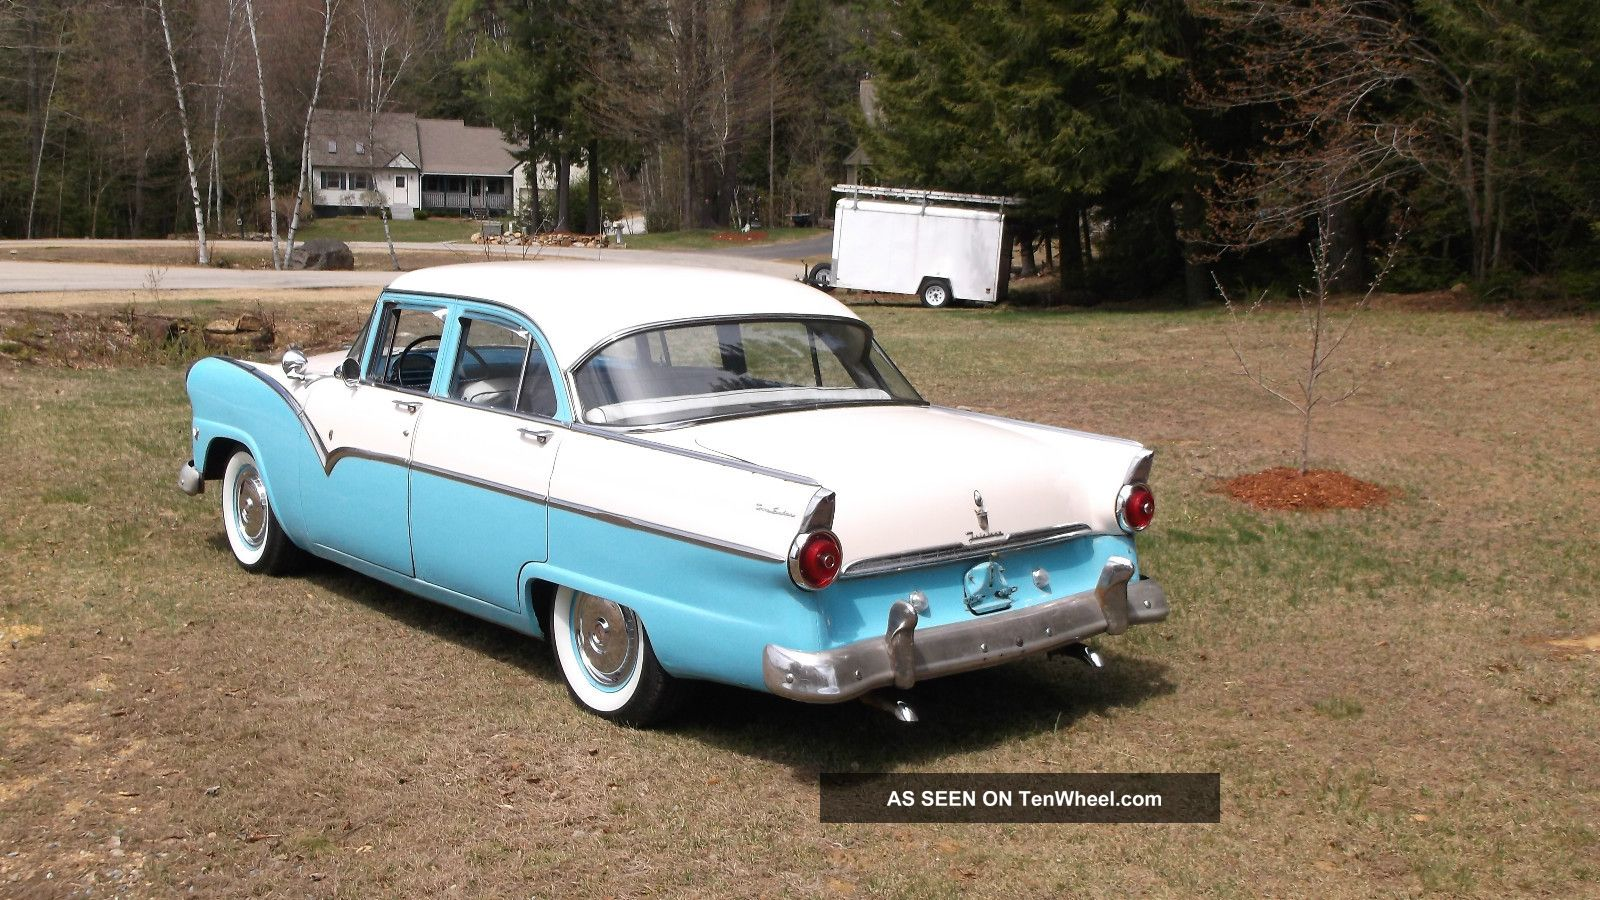 Look 1955 ford fairlane v8 3spd dual exhaust crusier for 1955 ford fairlane 4 door